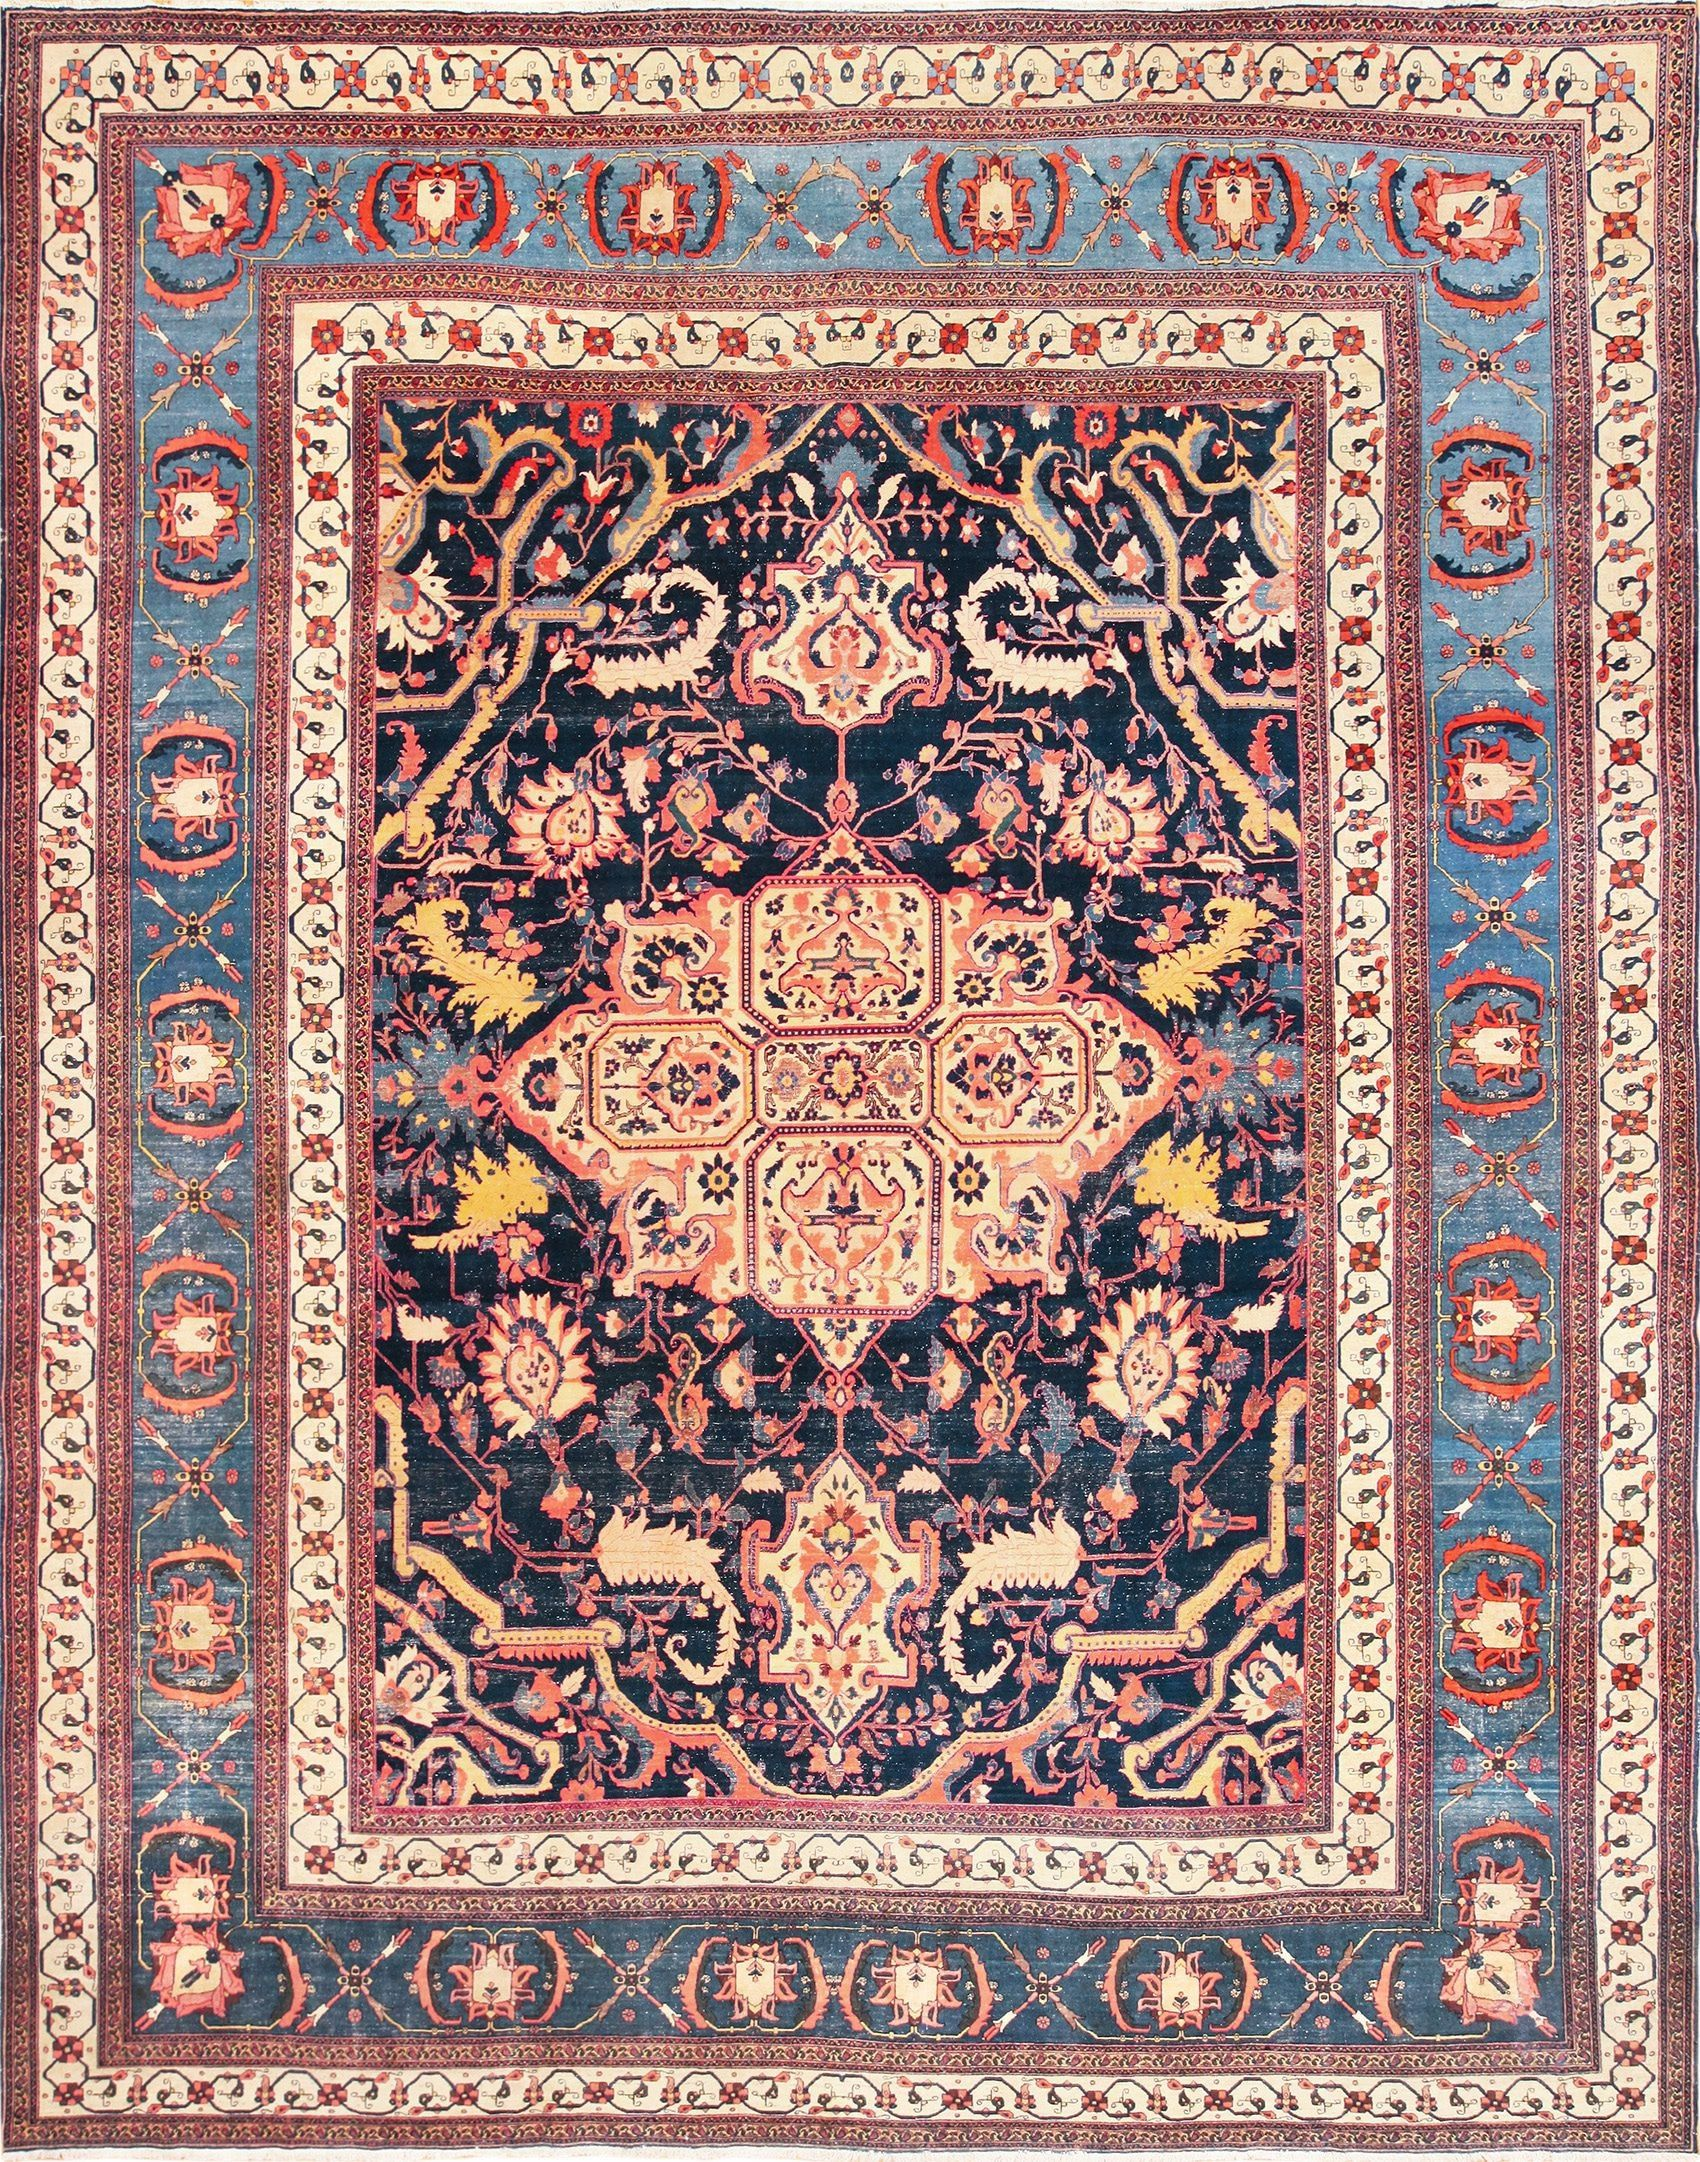 Shiny 12 Awesome Fine Rugs Photographs New Persian Rug Cleaning Nyc Beginneryogaclassesnear Http Transpo Antique Persian Rug Painted Rug Antique Carpets